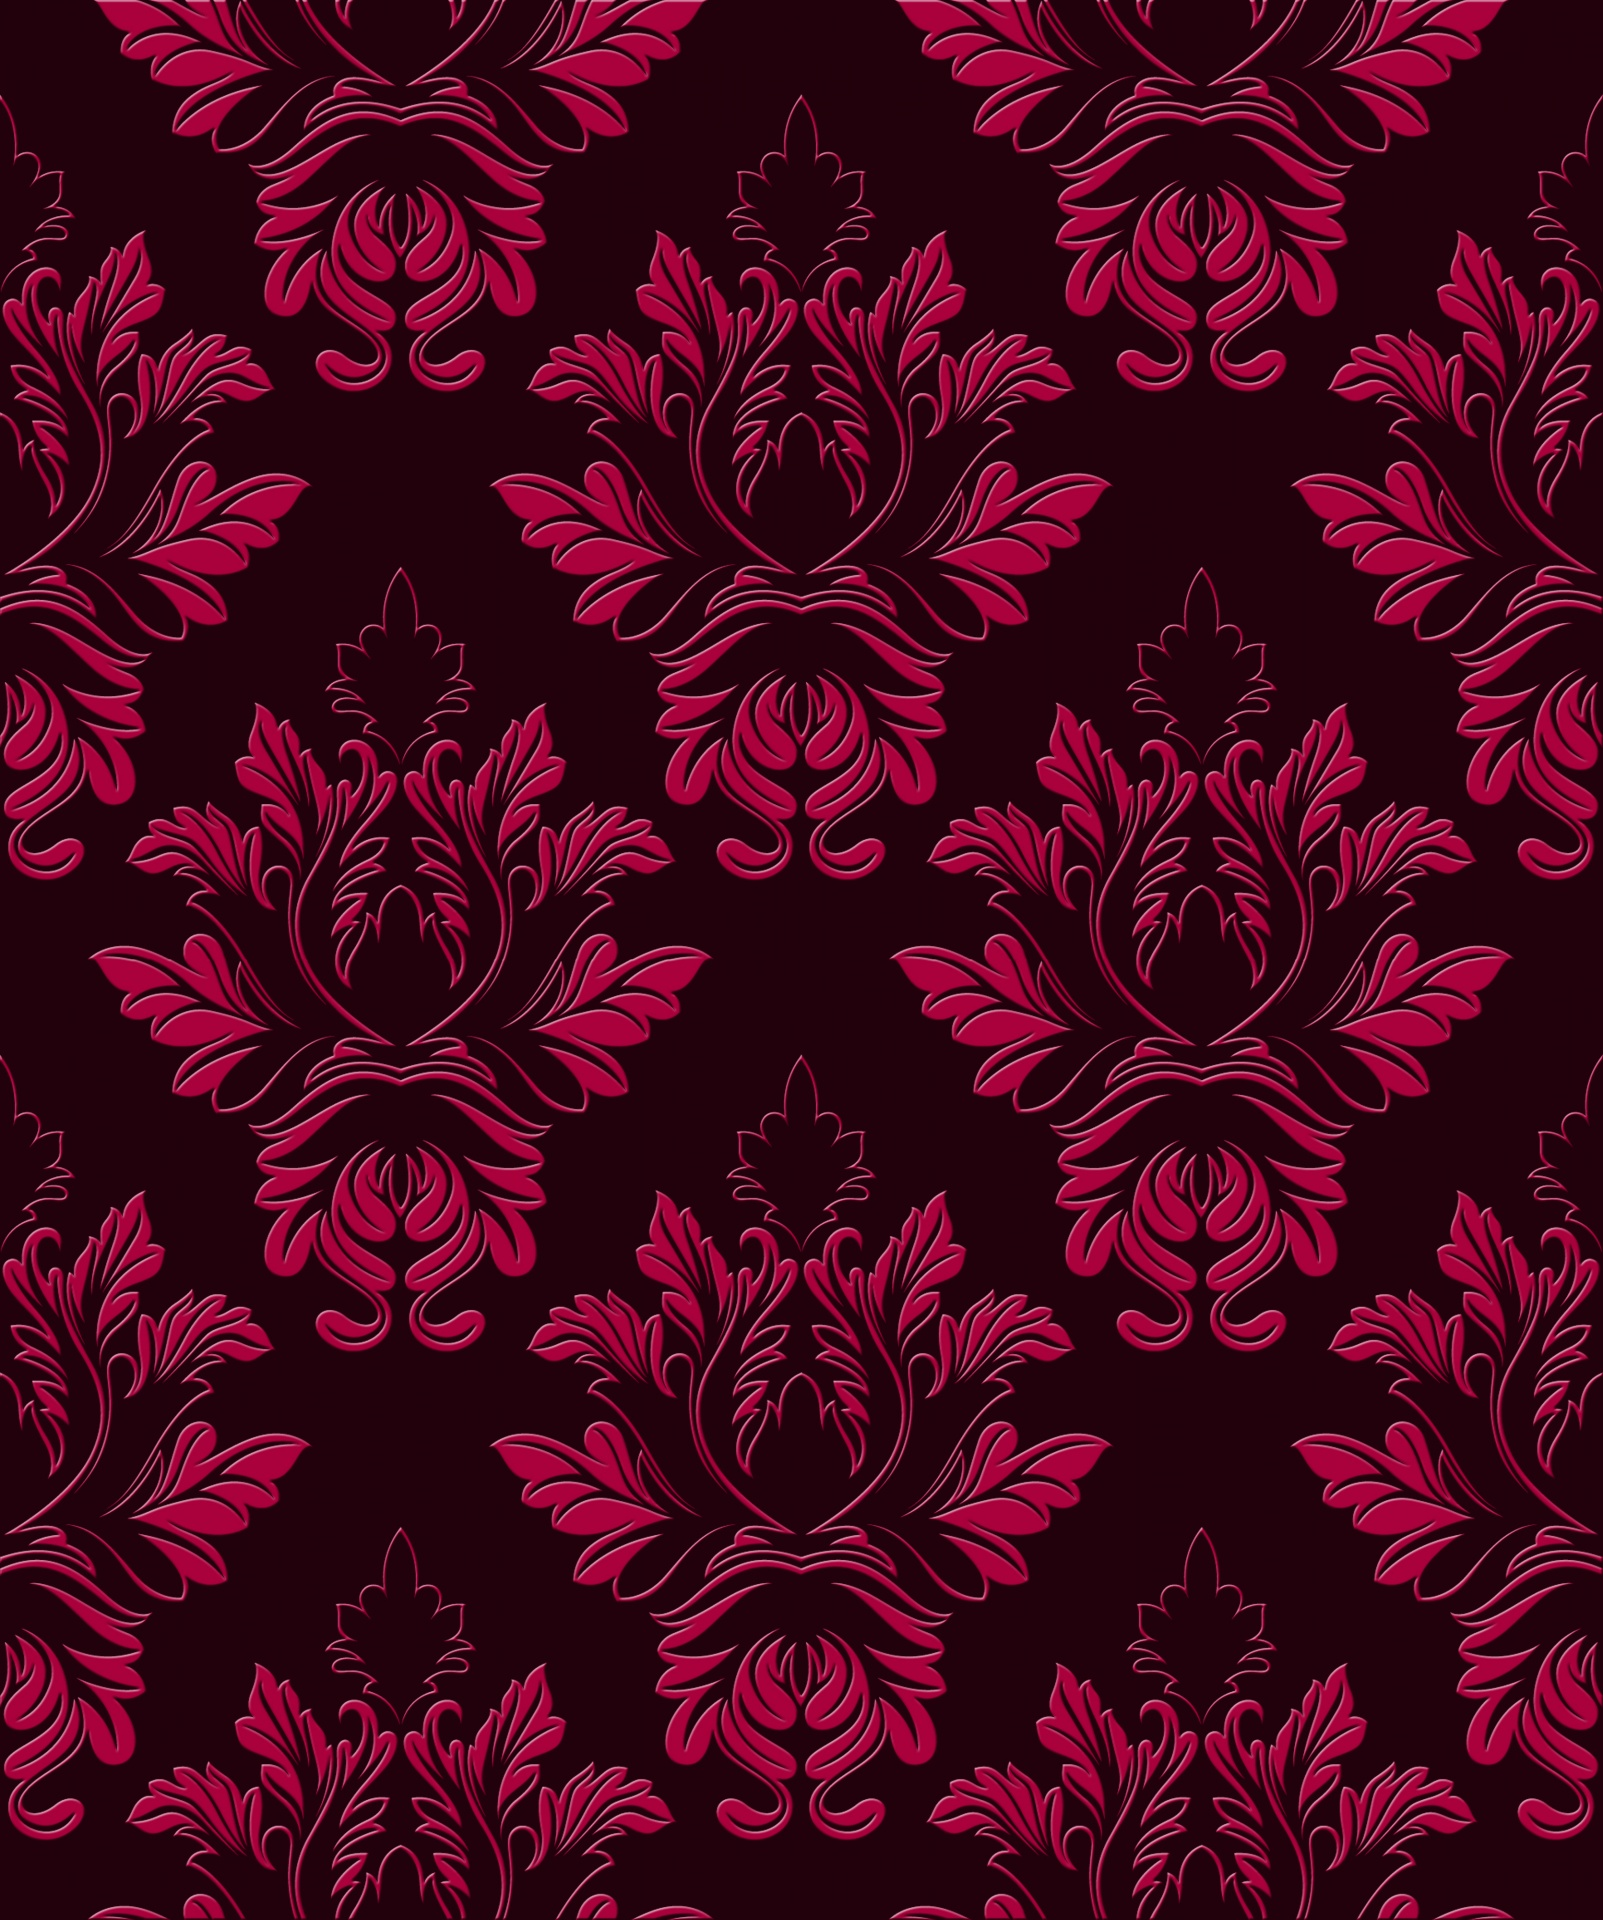 Damask Pattern Wallpaper Paper Background Free Image From